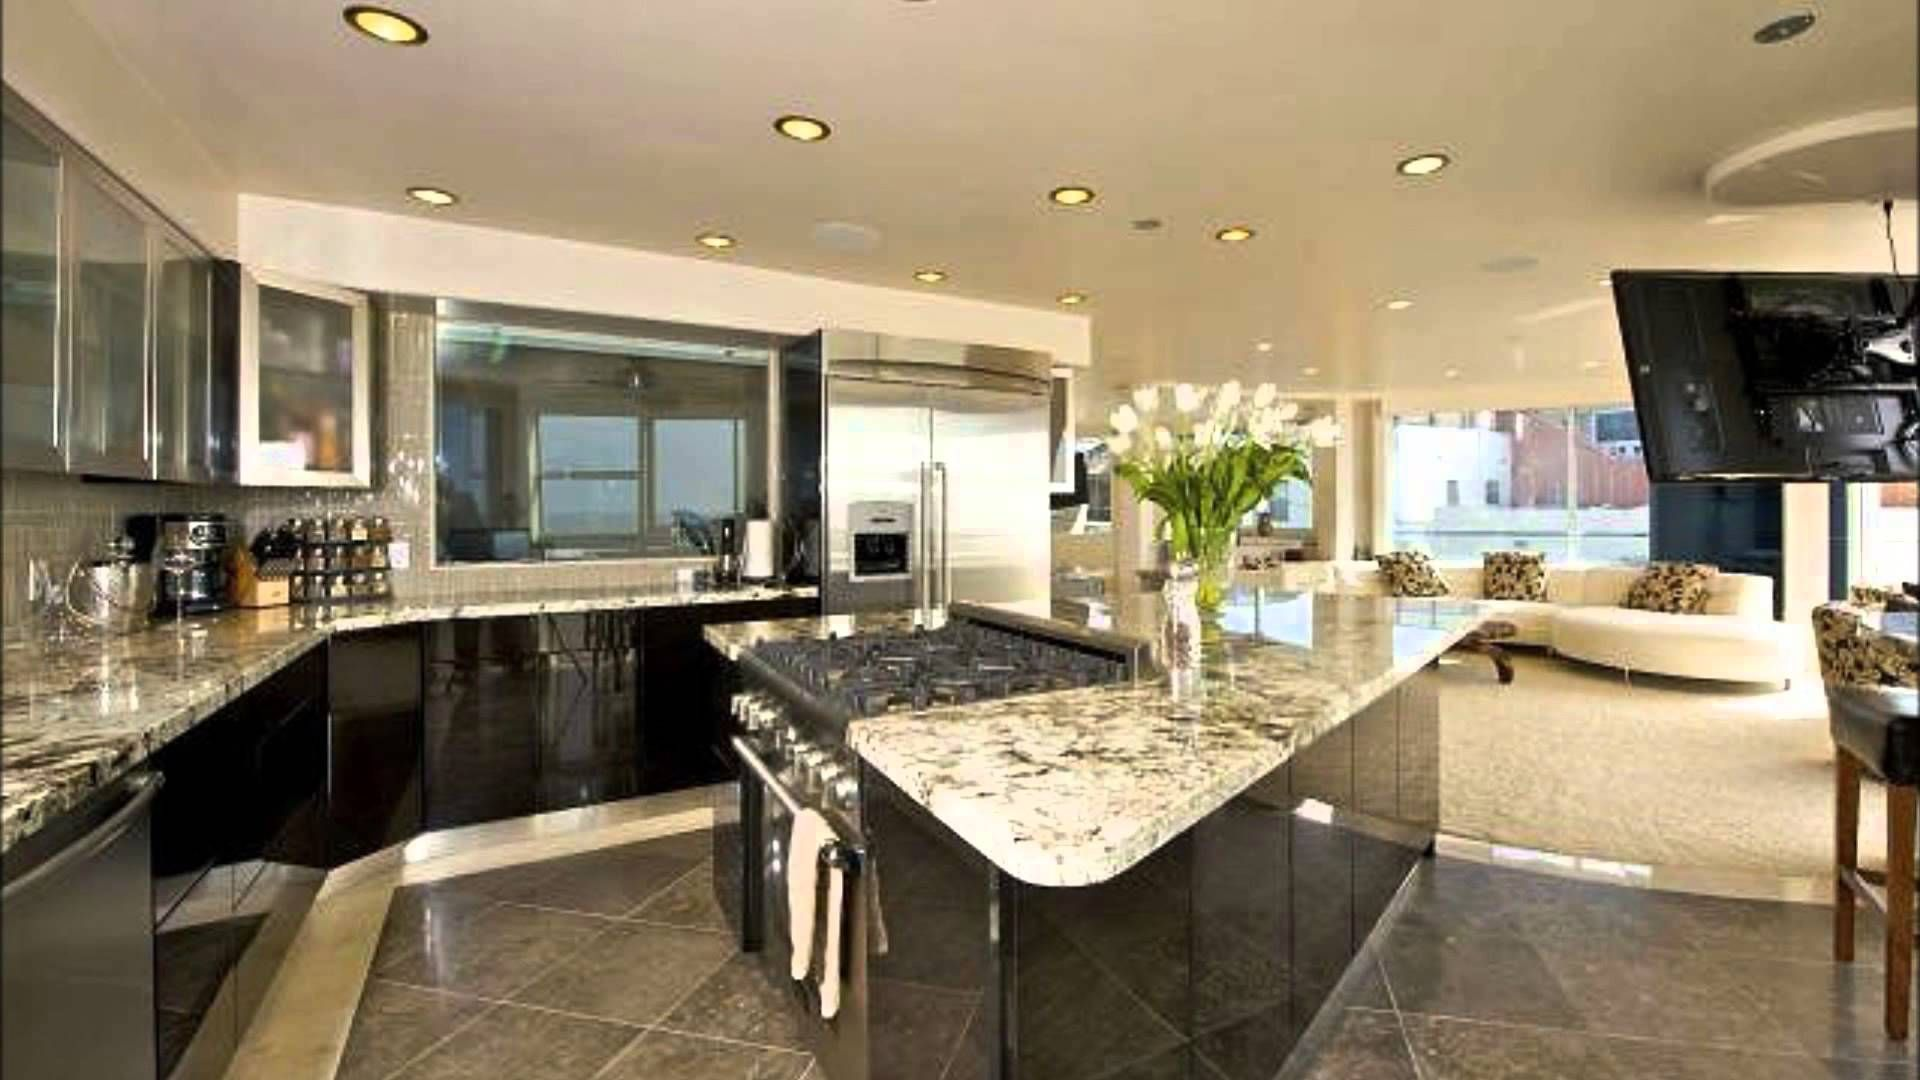 our blog: our channel: fresh ideas for kitchen design. description